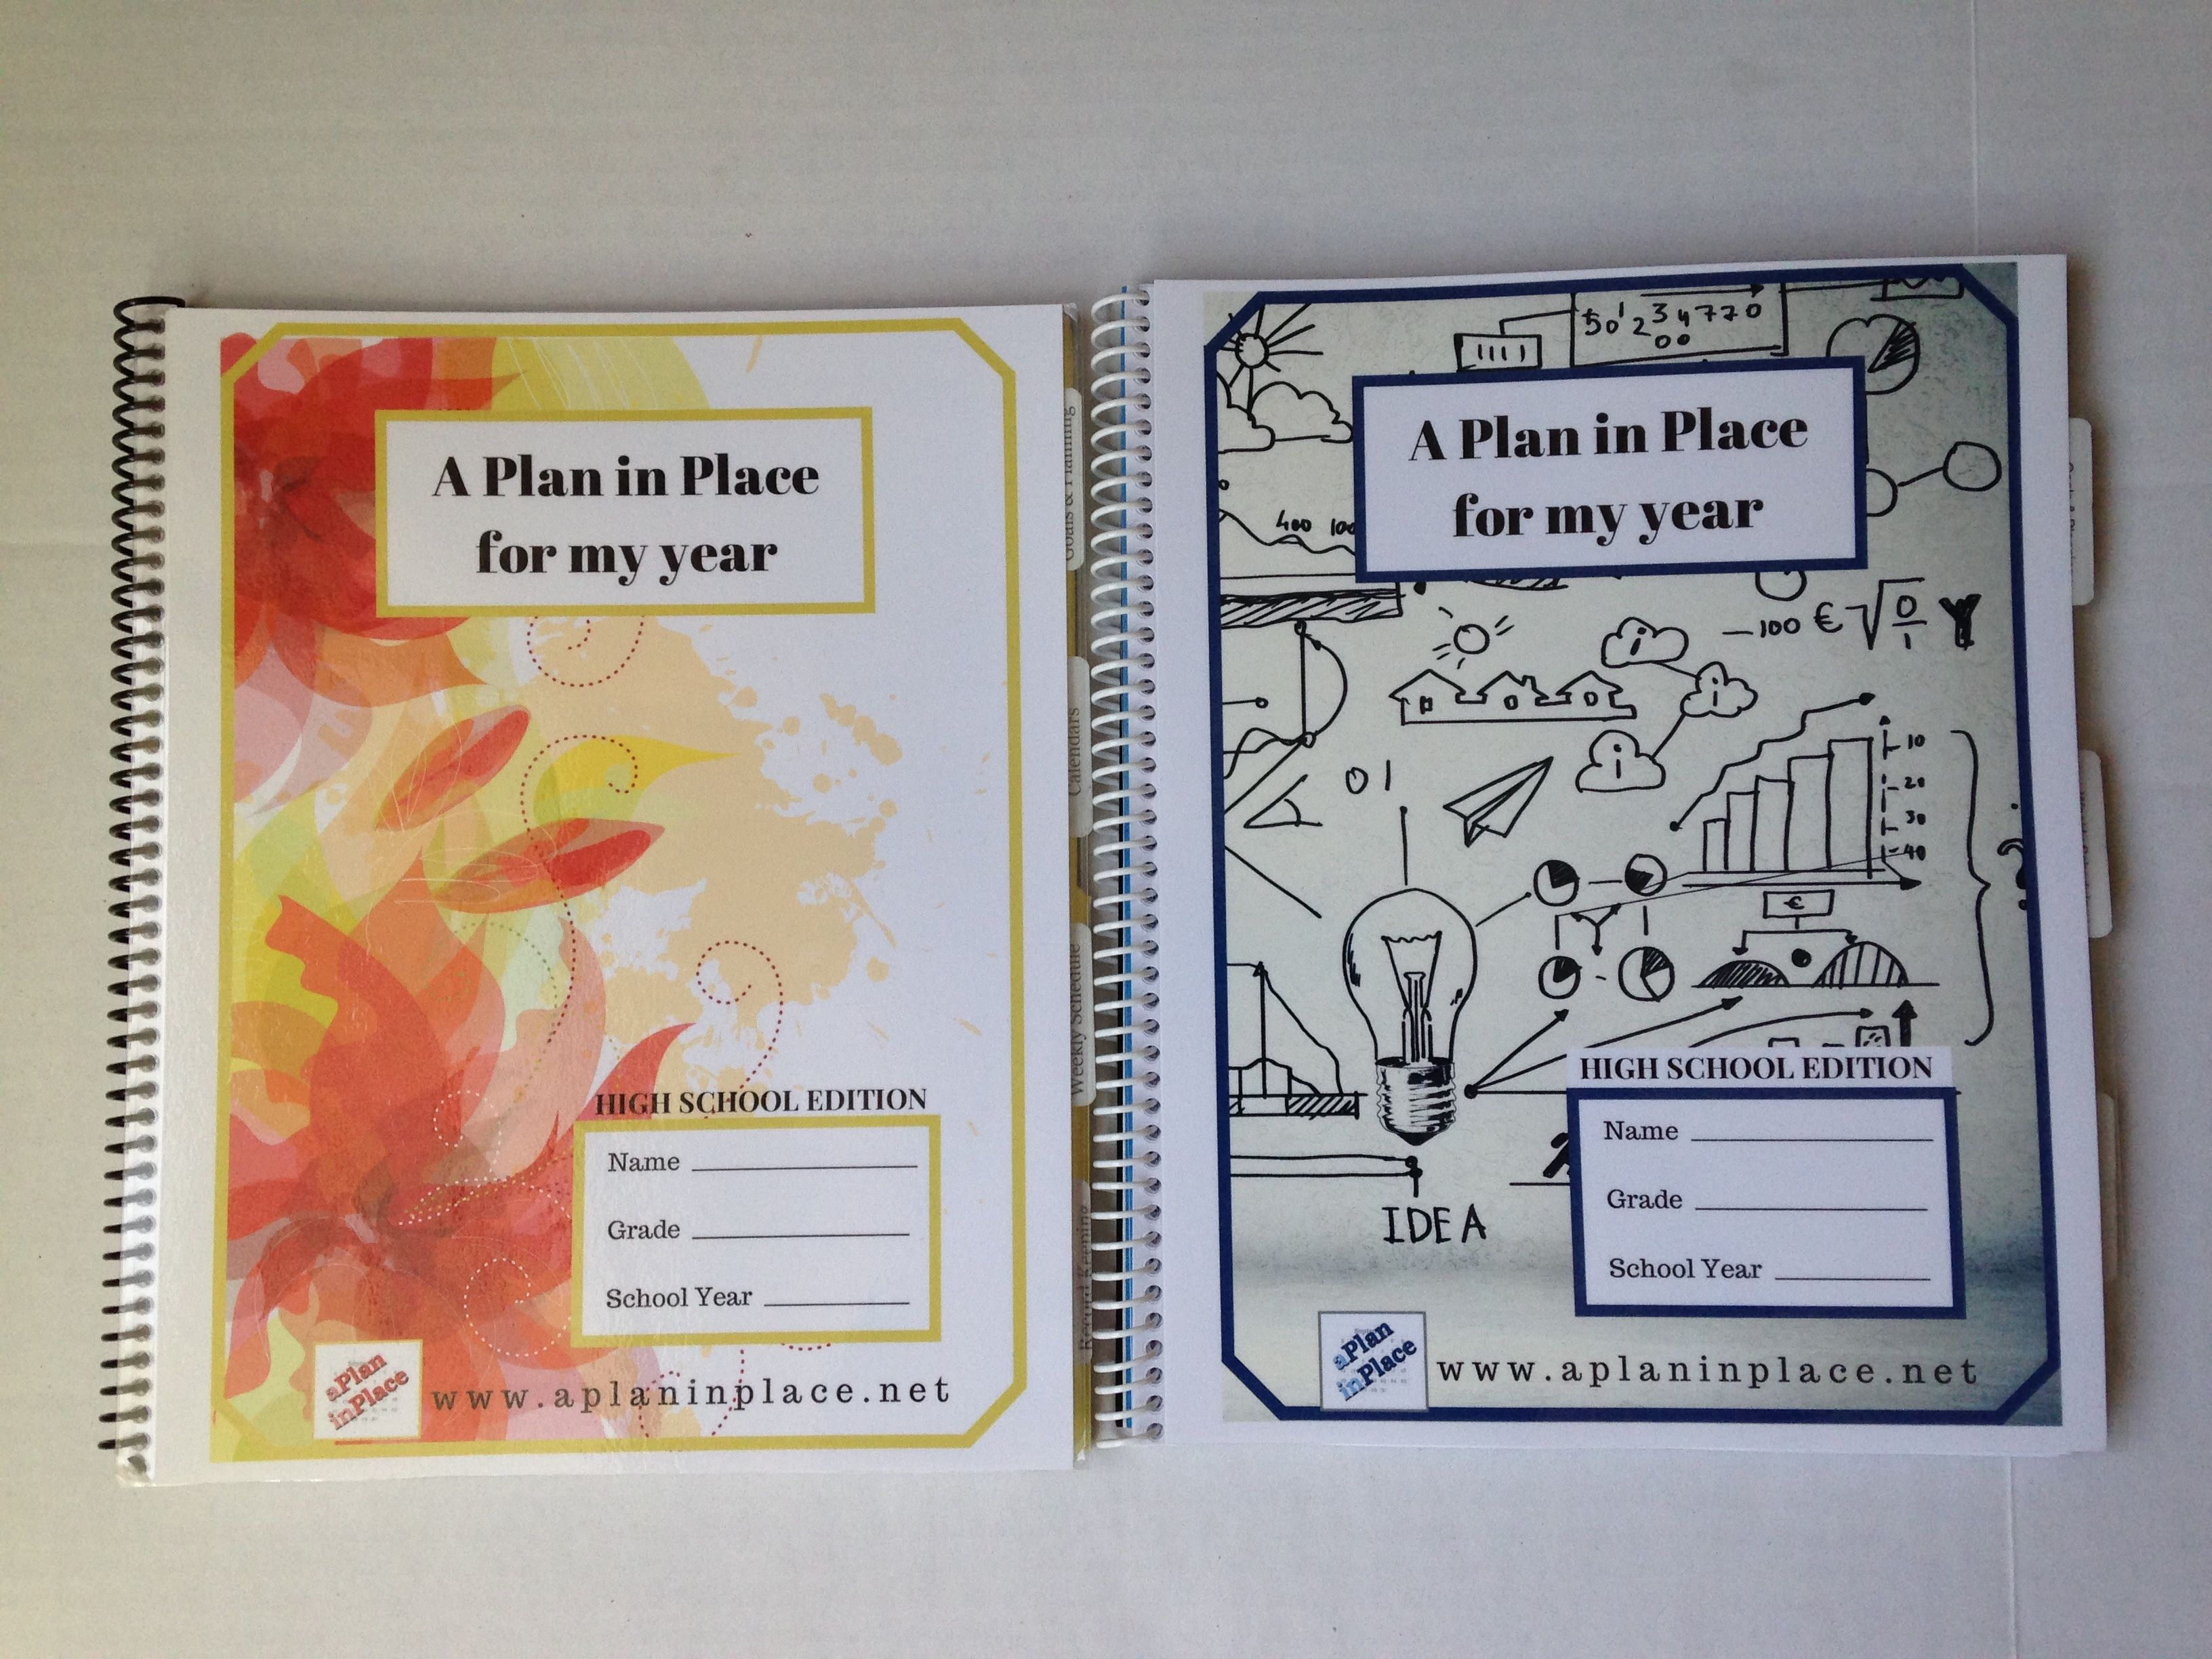 A Plan In Place |  High School Student Edition Planner